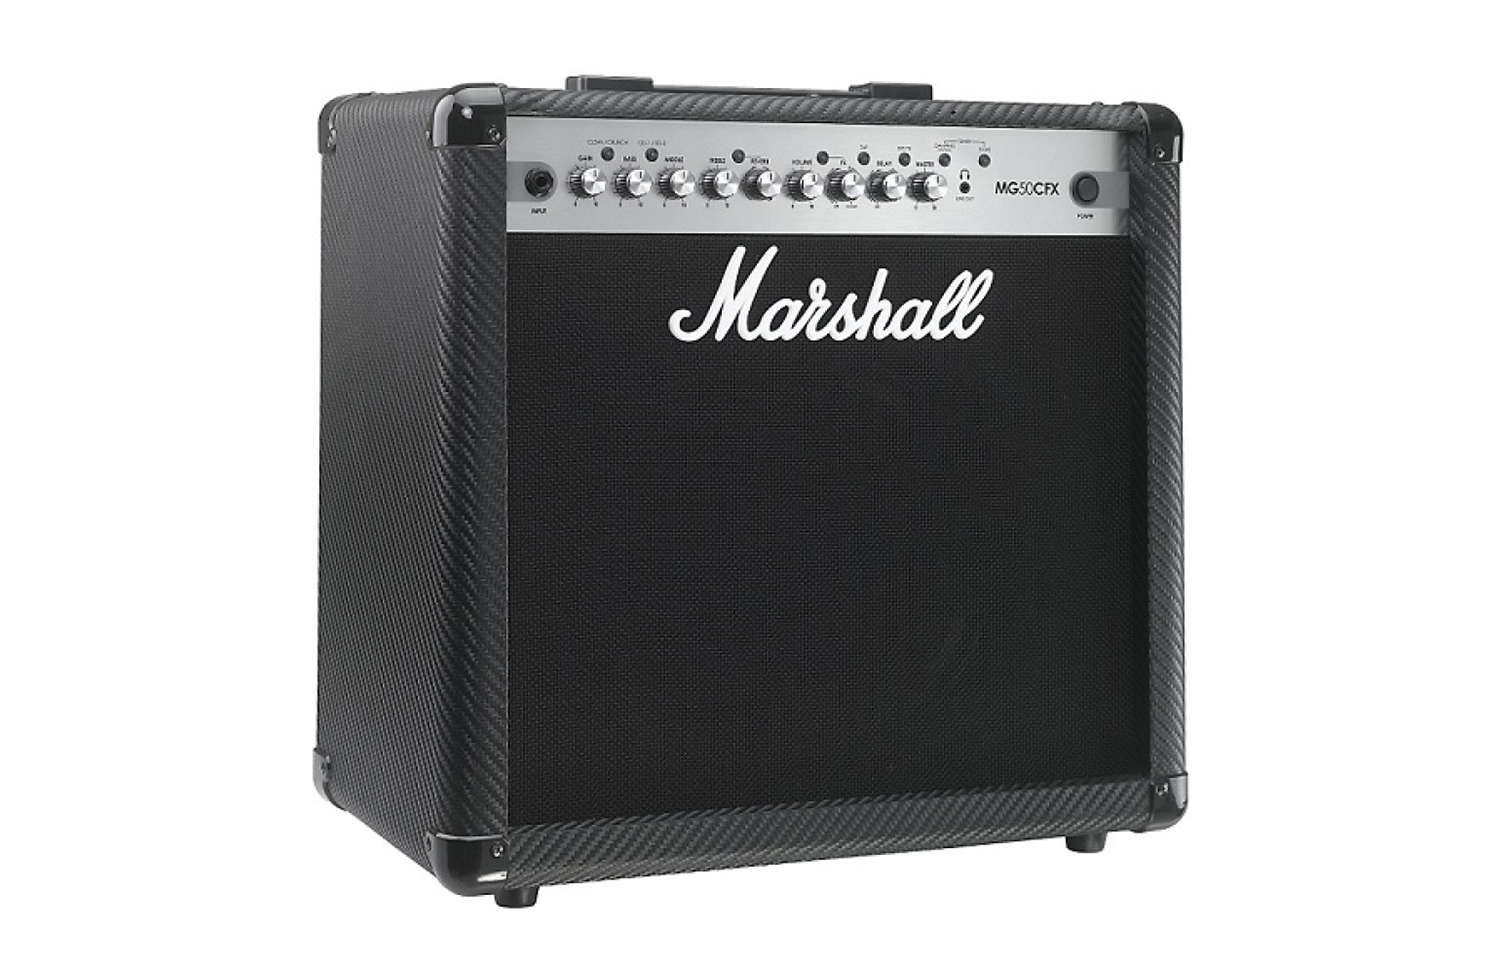 Buy Marshall Mg50cfx 50 Watts Weffects Online Megsstar Technology Audio Amplifier 3